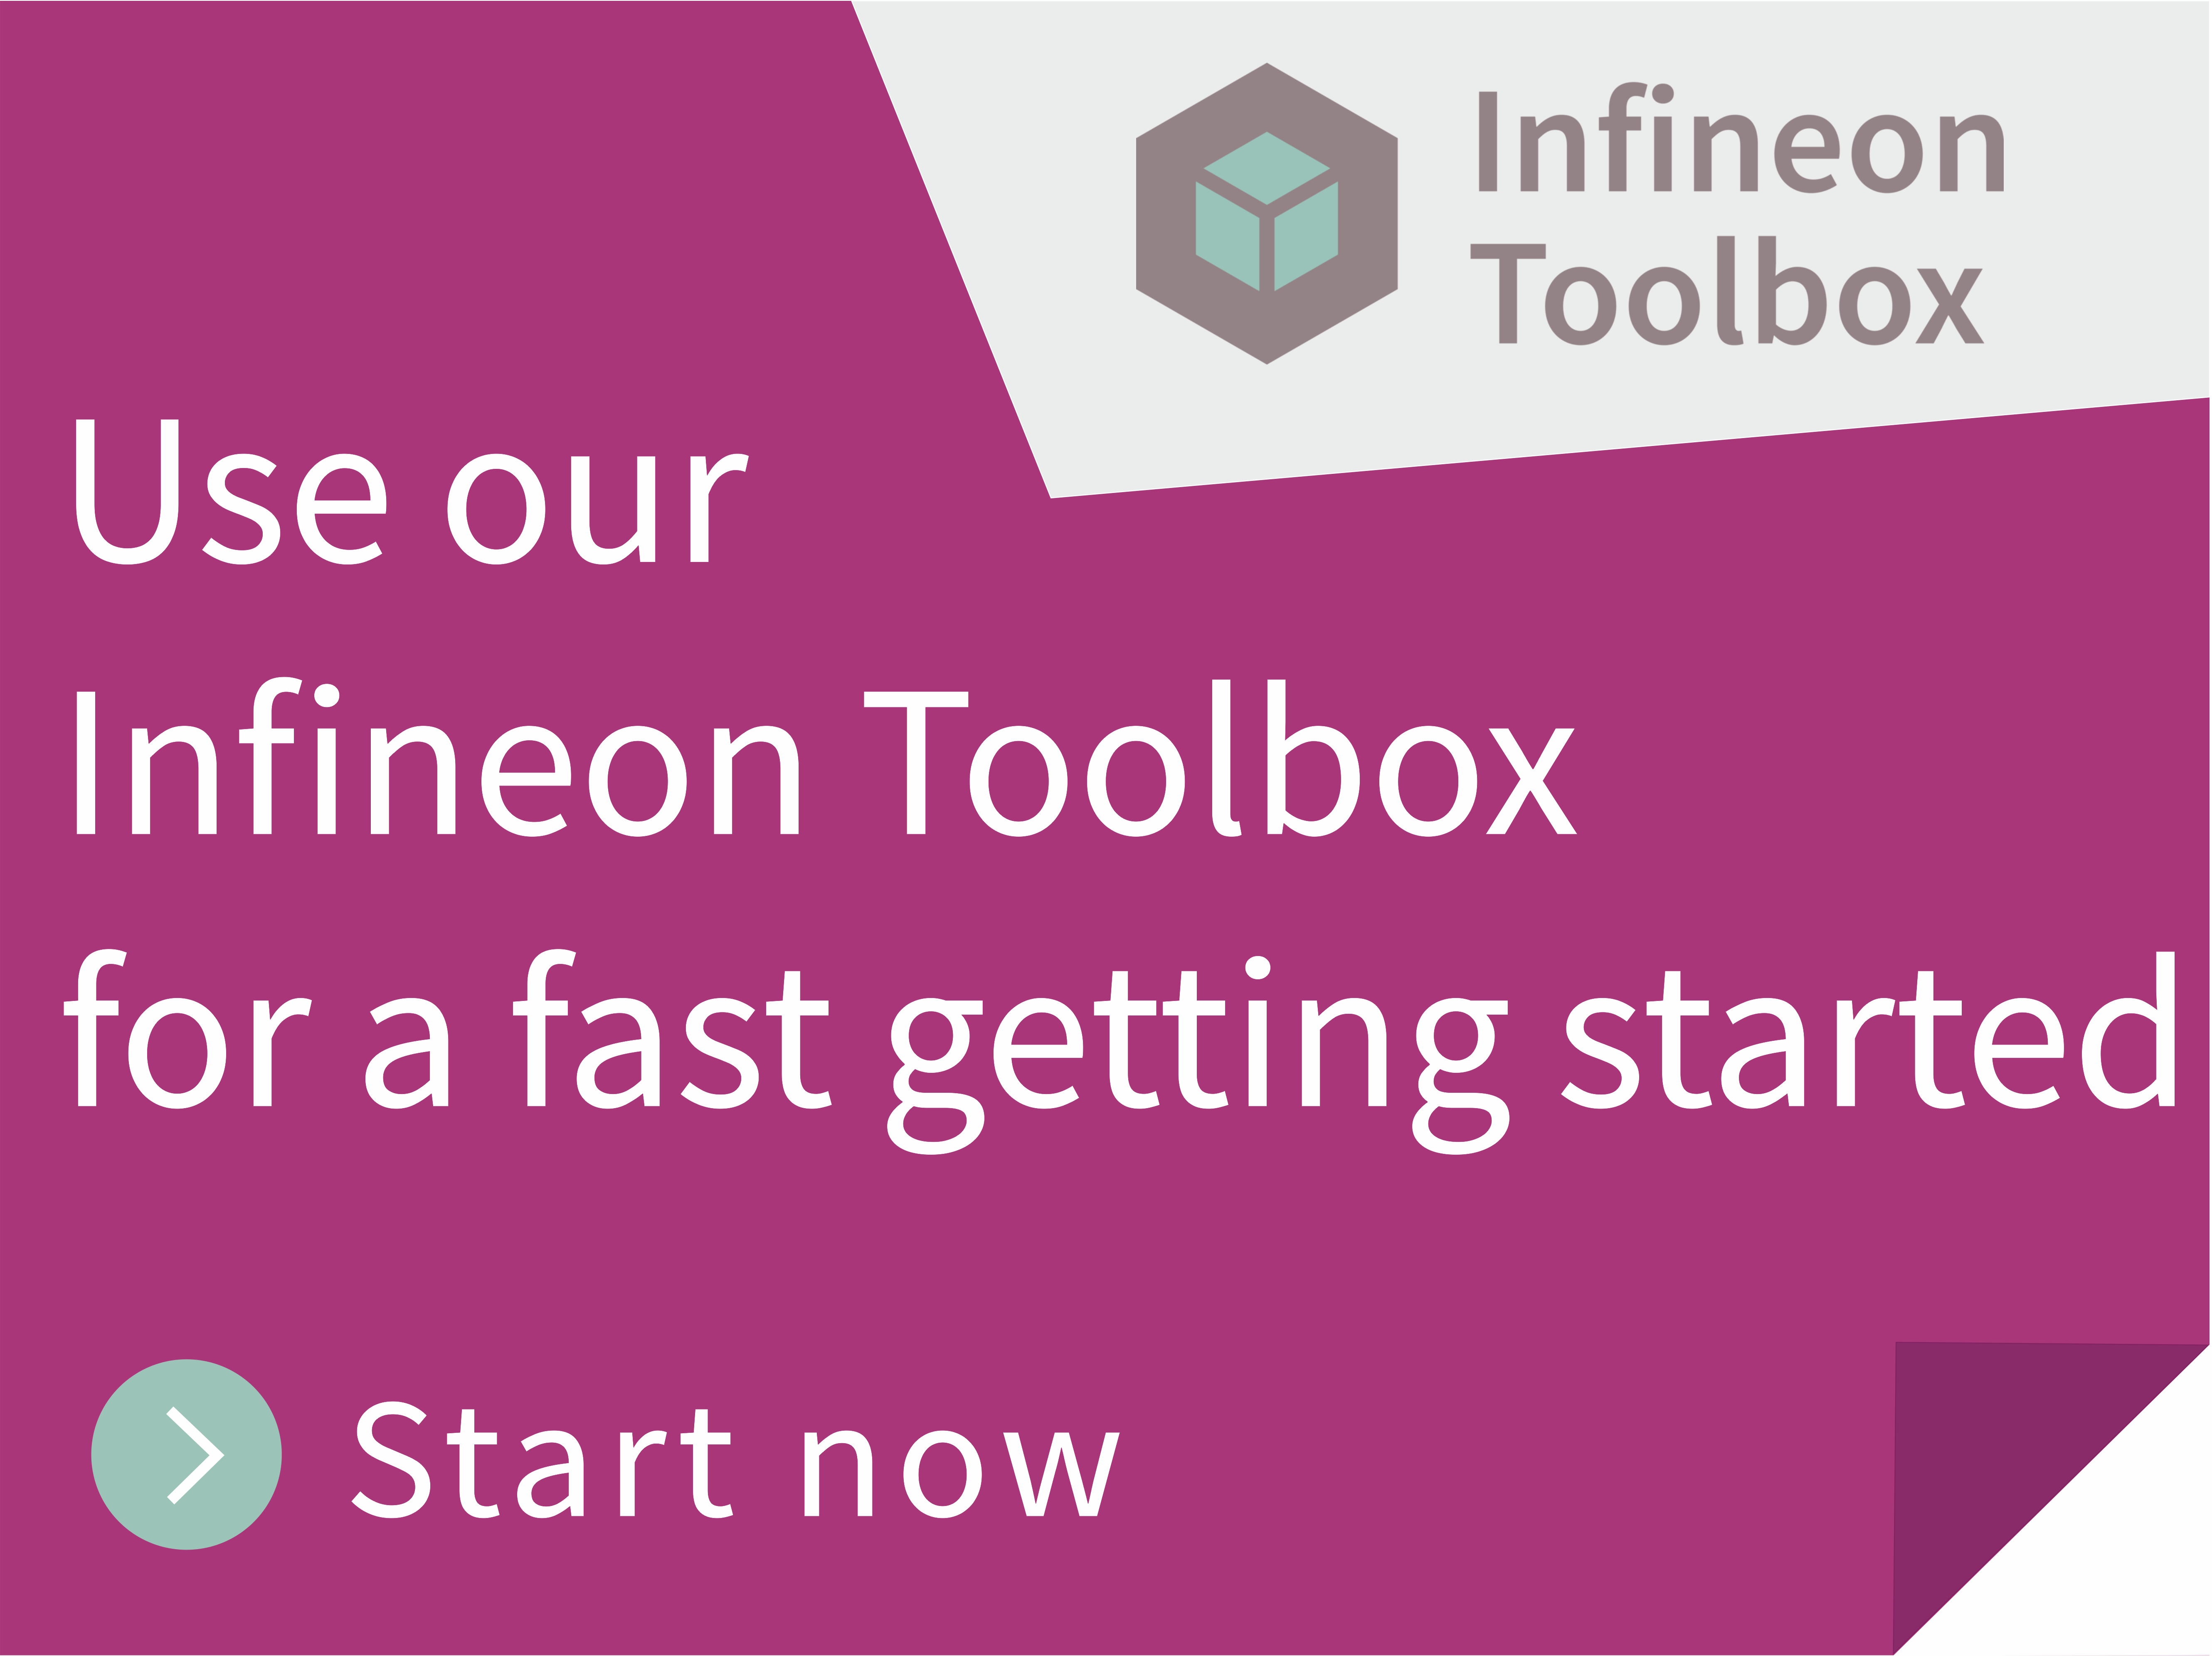 Get started with Infineon Toolbox